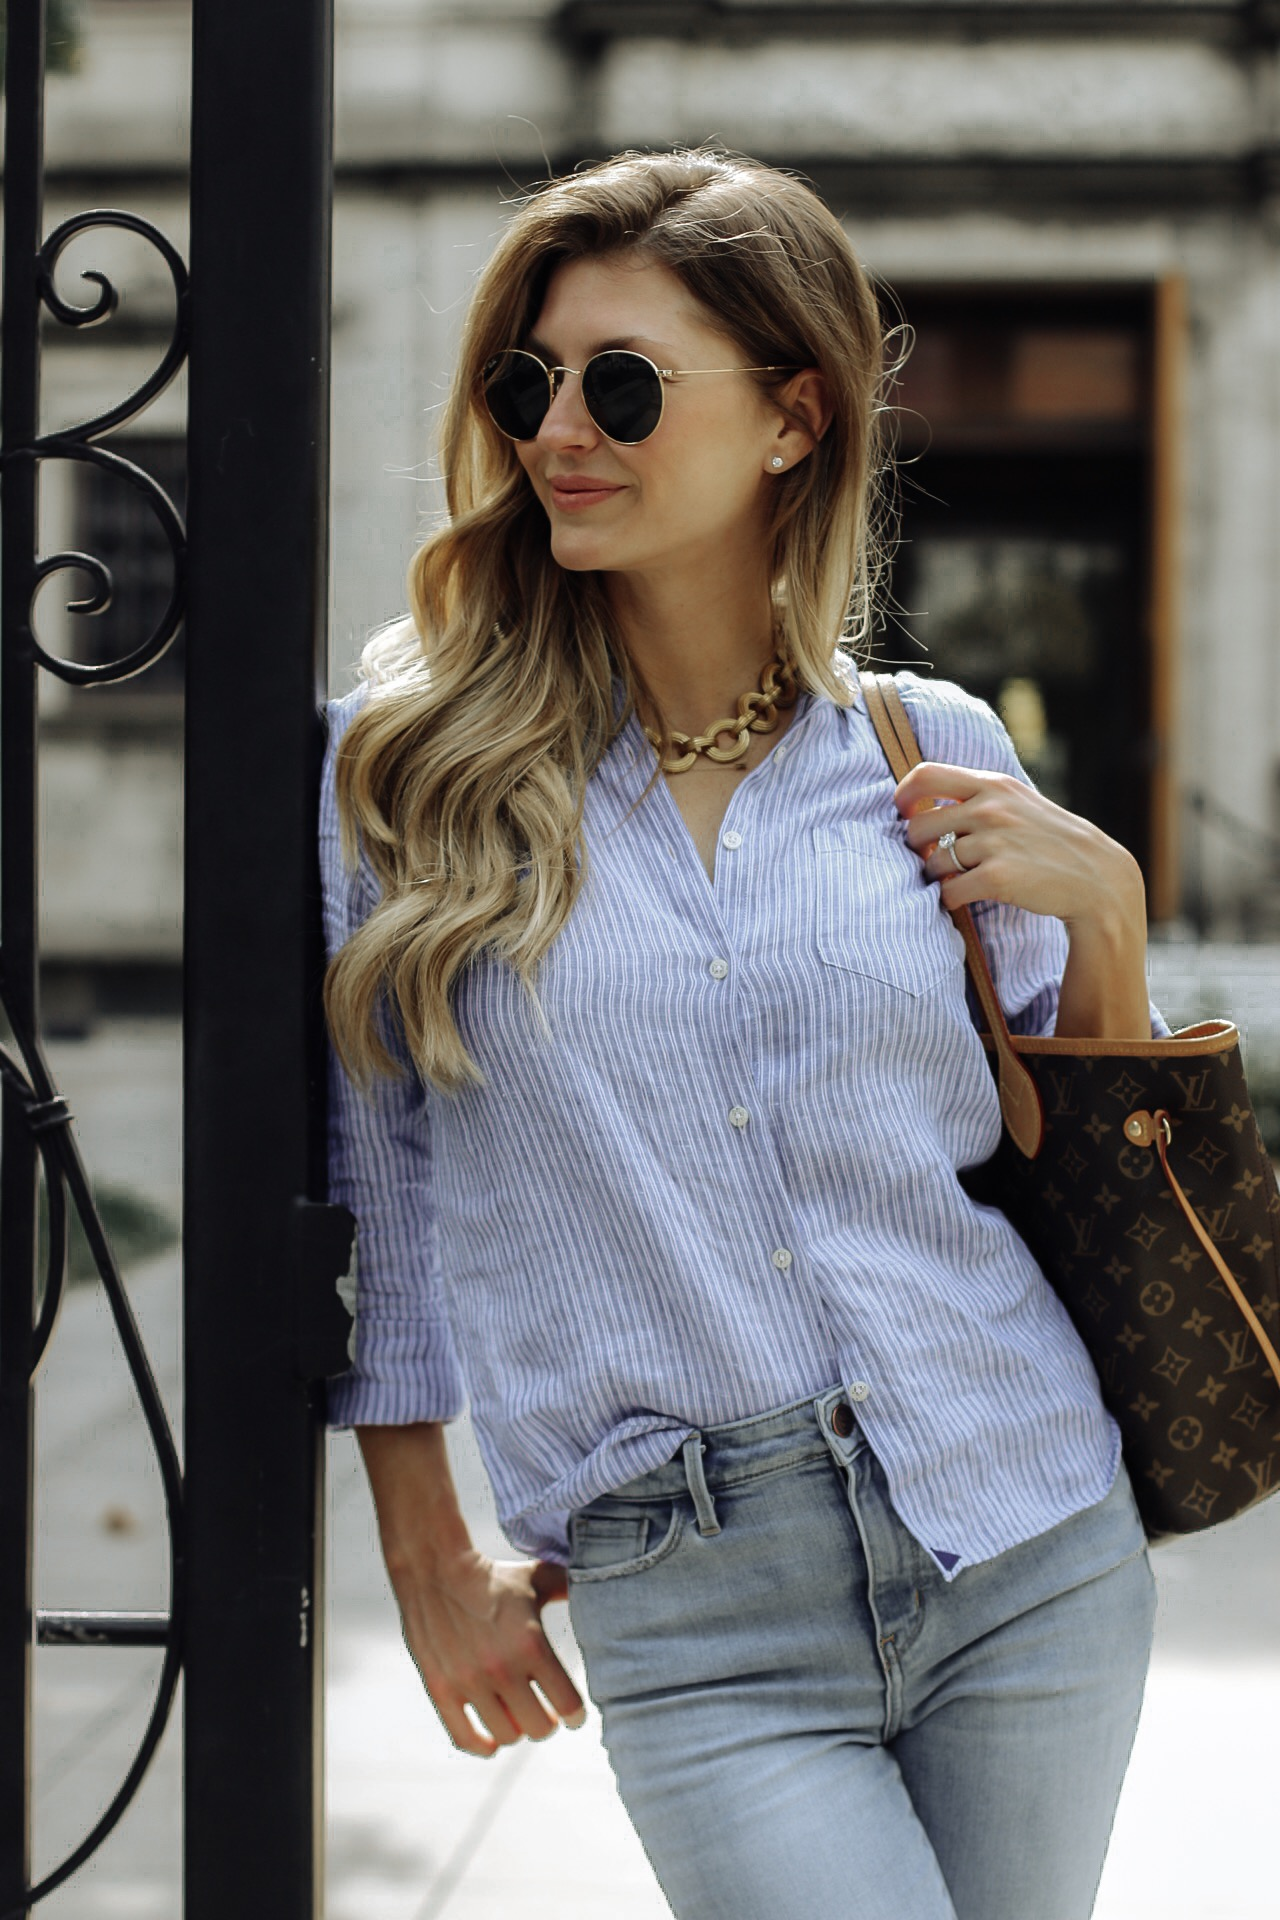 influencer wearing untuckit top and julie vos necklace